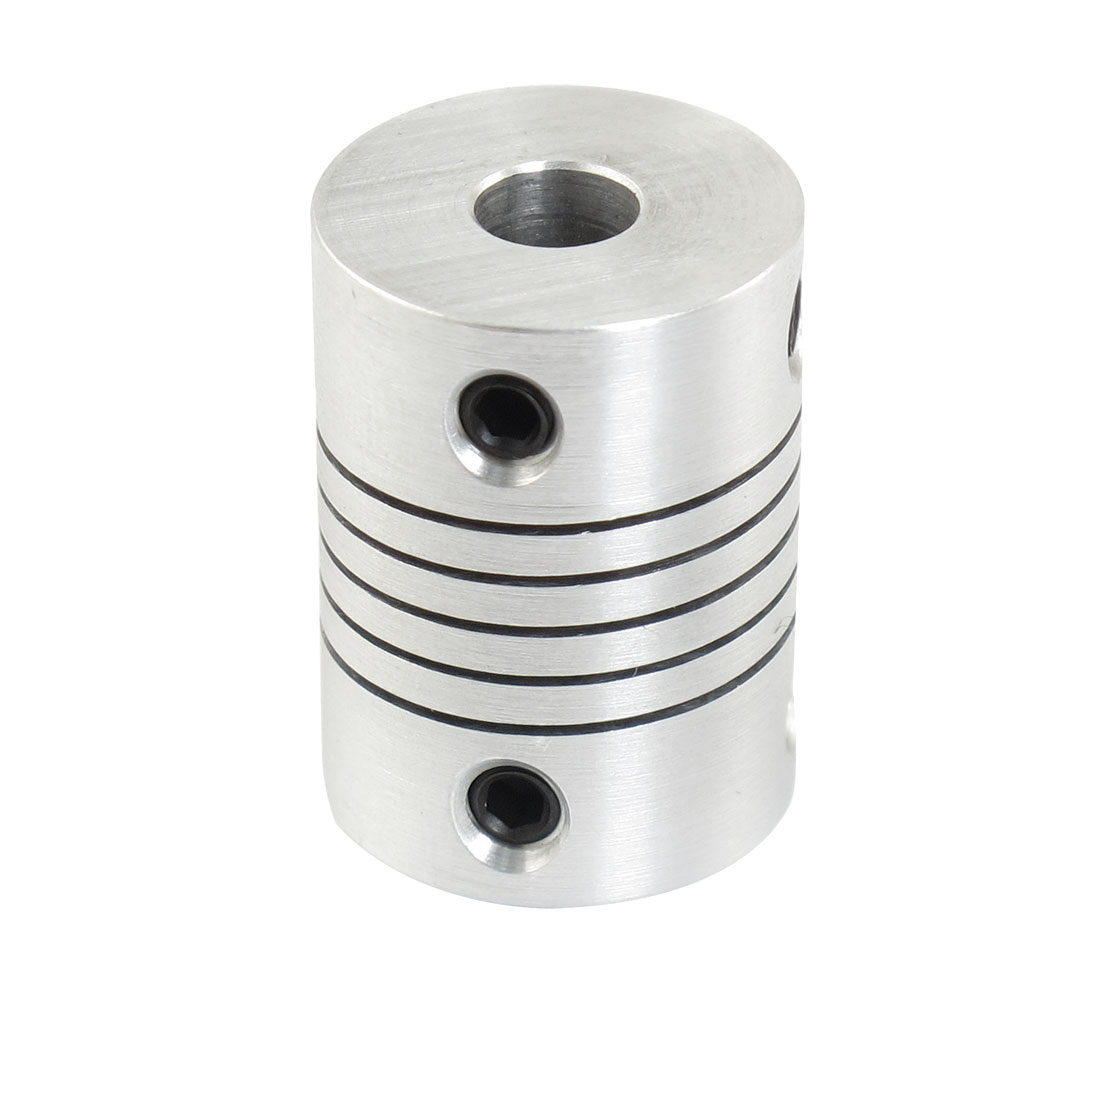 25mm Diameter 18mm Length 6mm Encode Beam Coupling